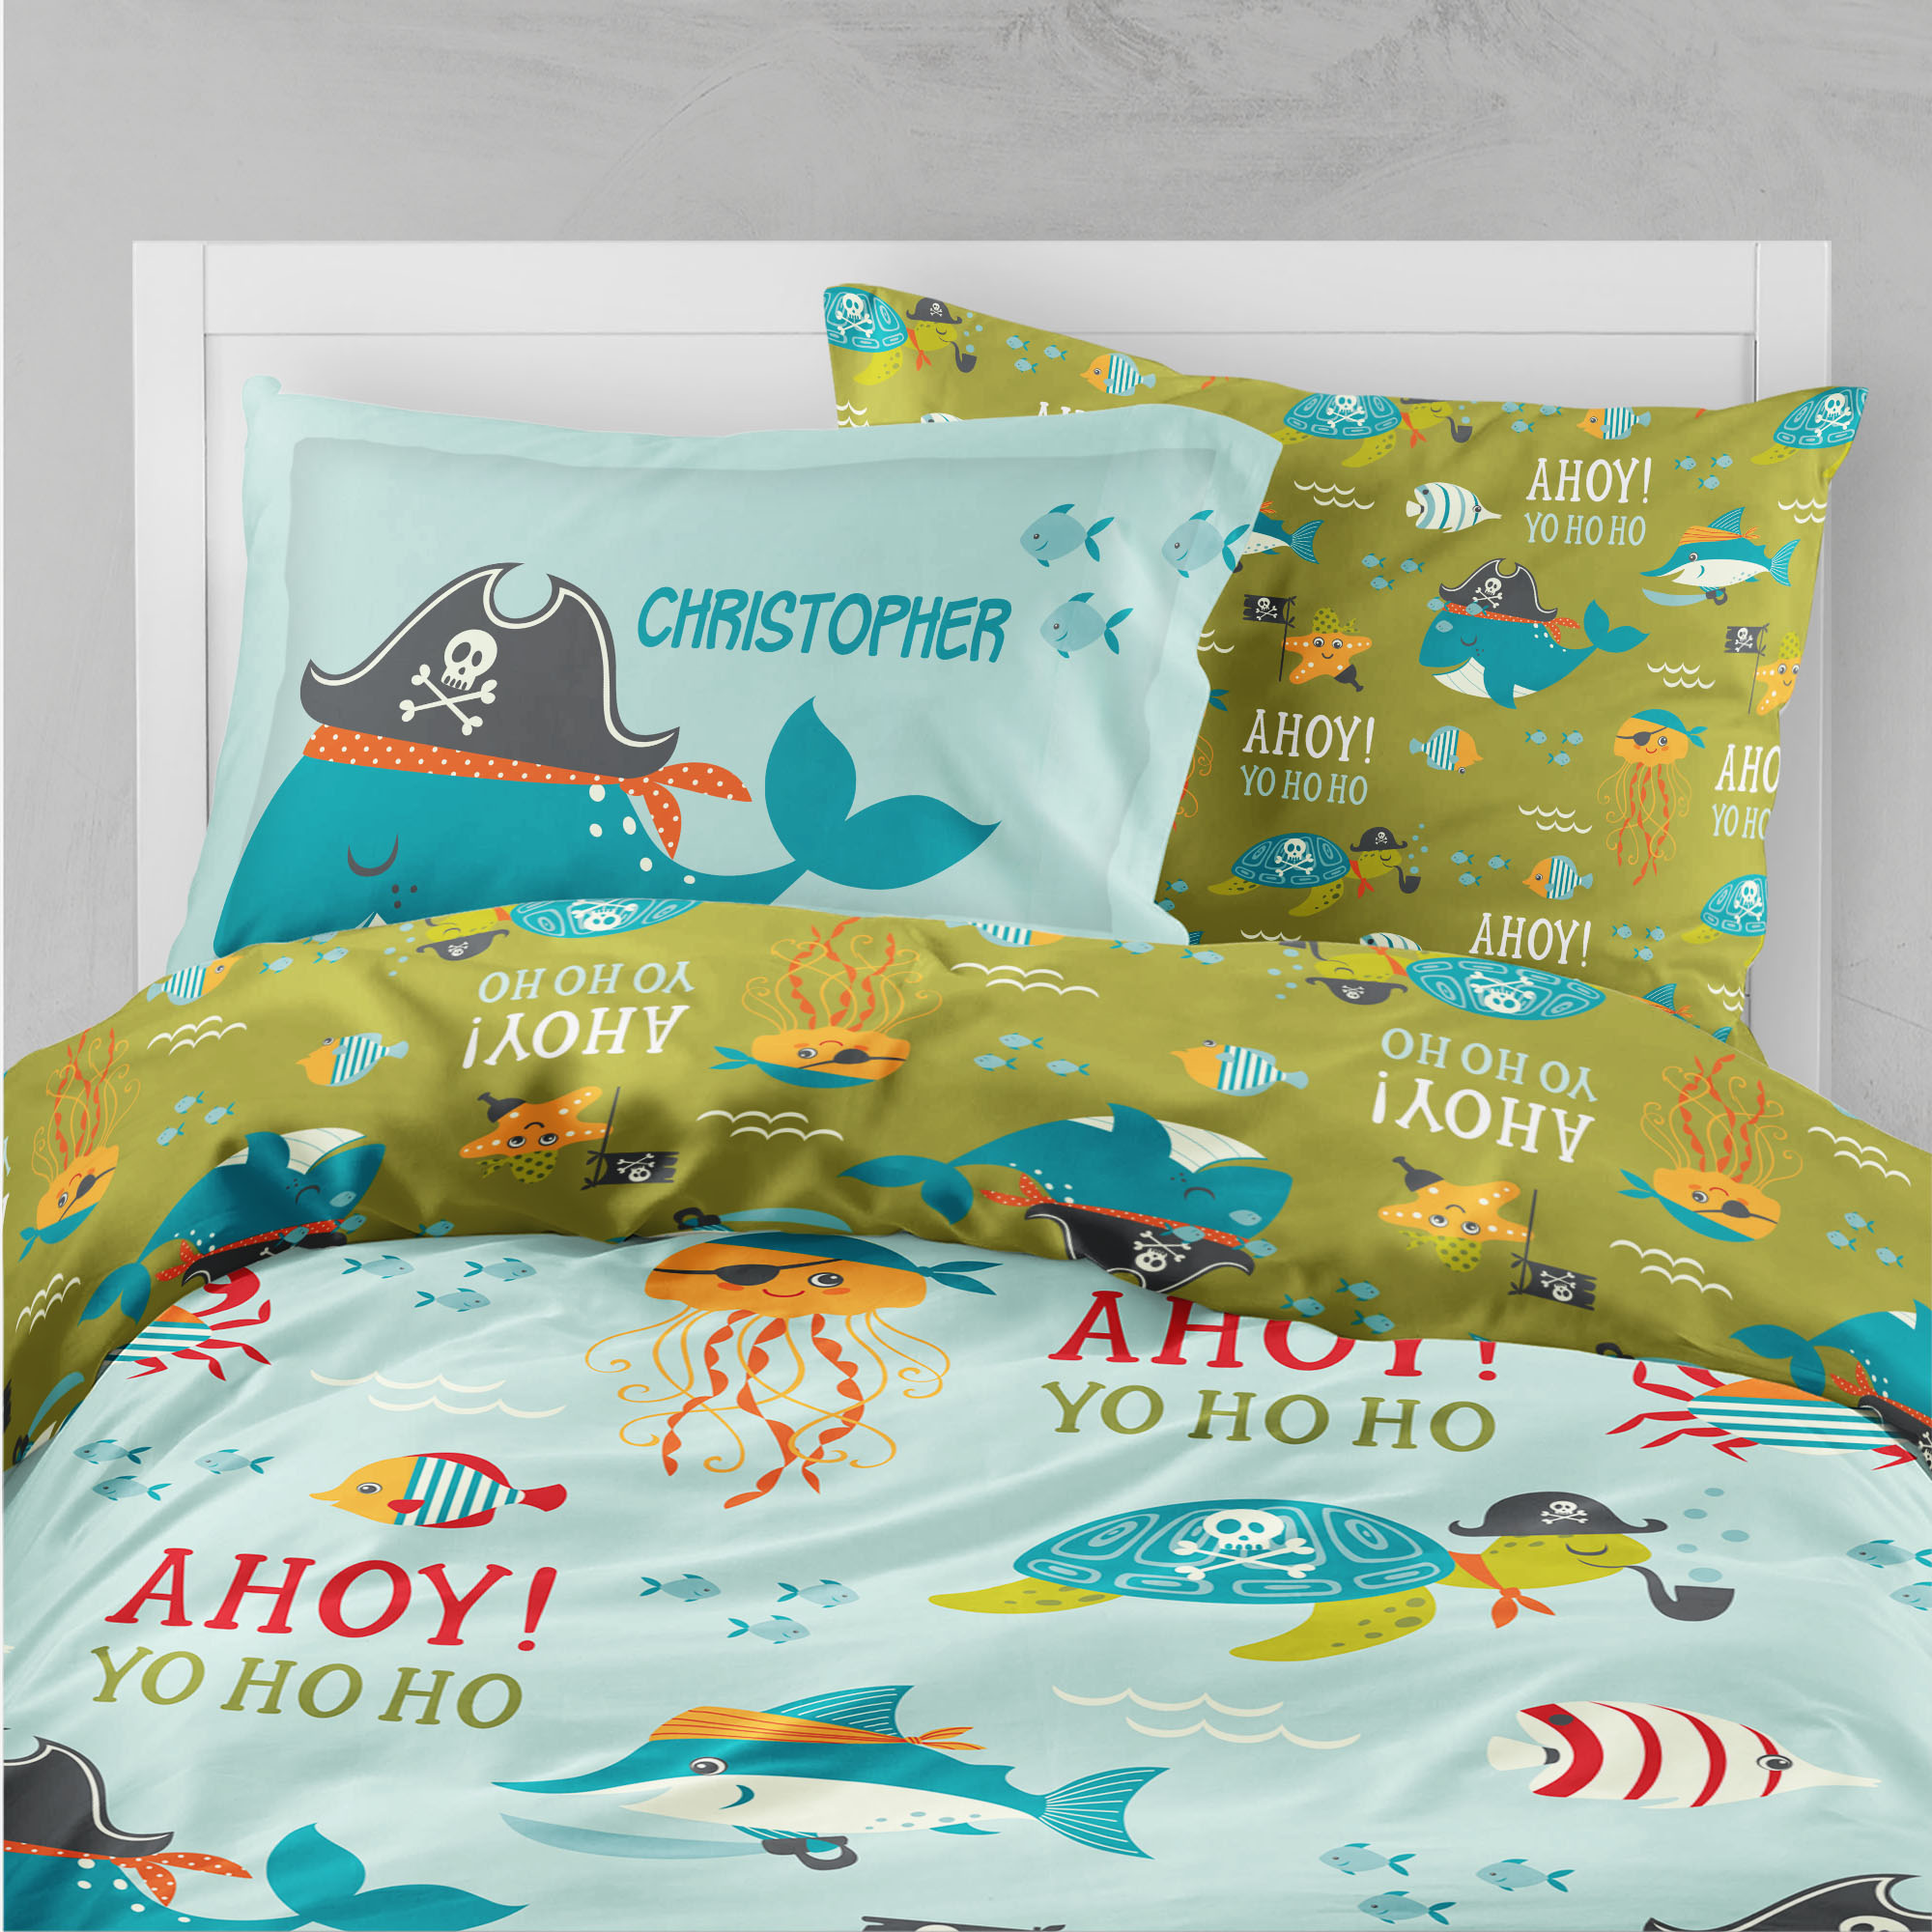 PKBED-00006-PirateAdventure Ahoy Matey Pirate Adventures Kids Beddding Collection Bedroom Set by Pickleberry Kids